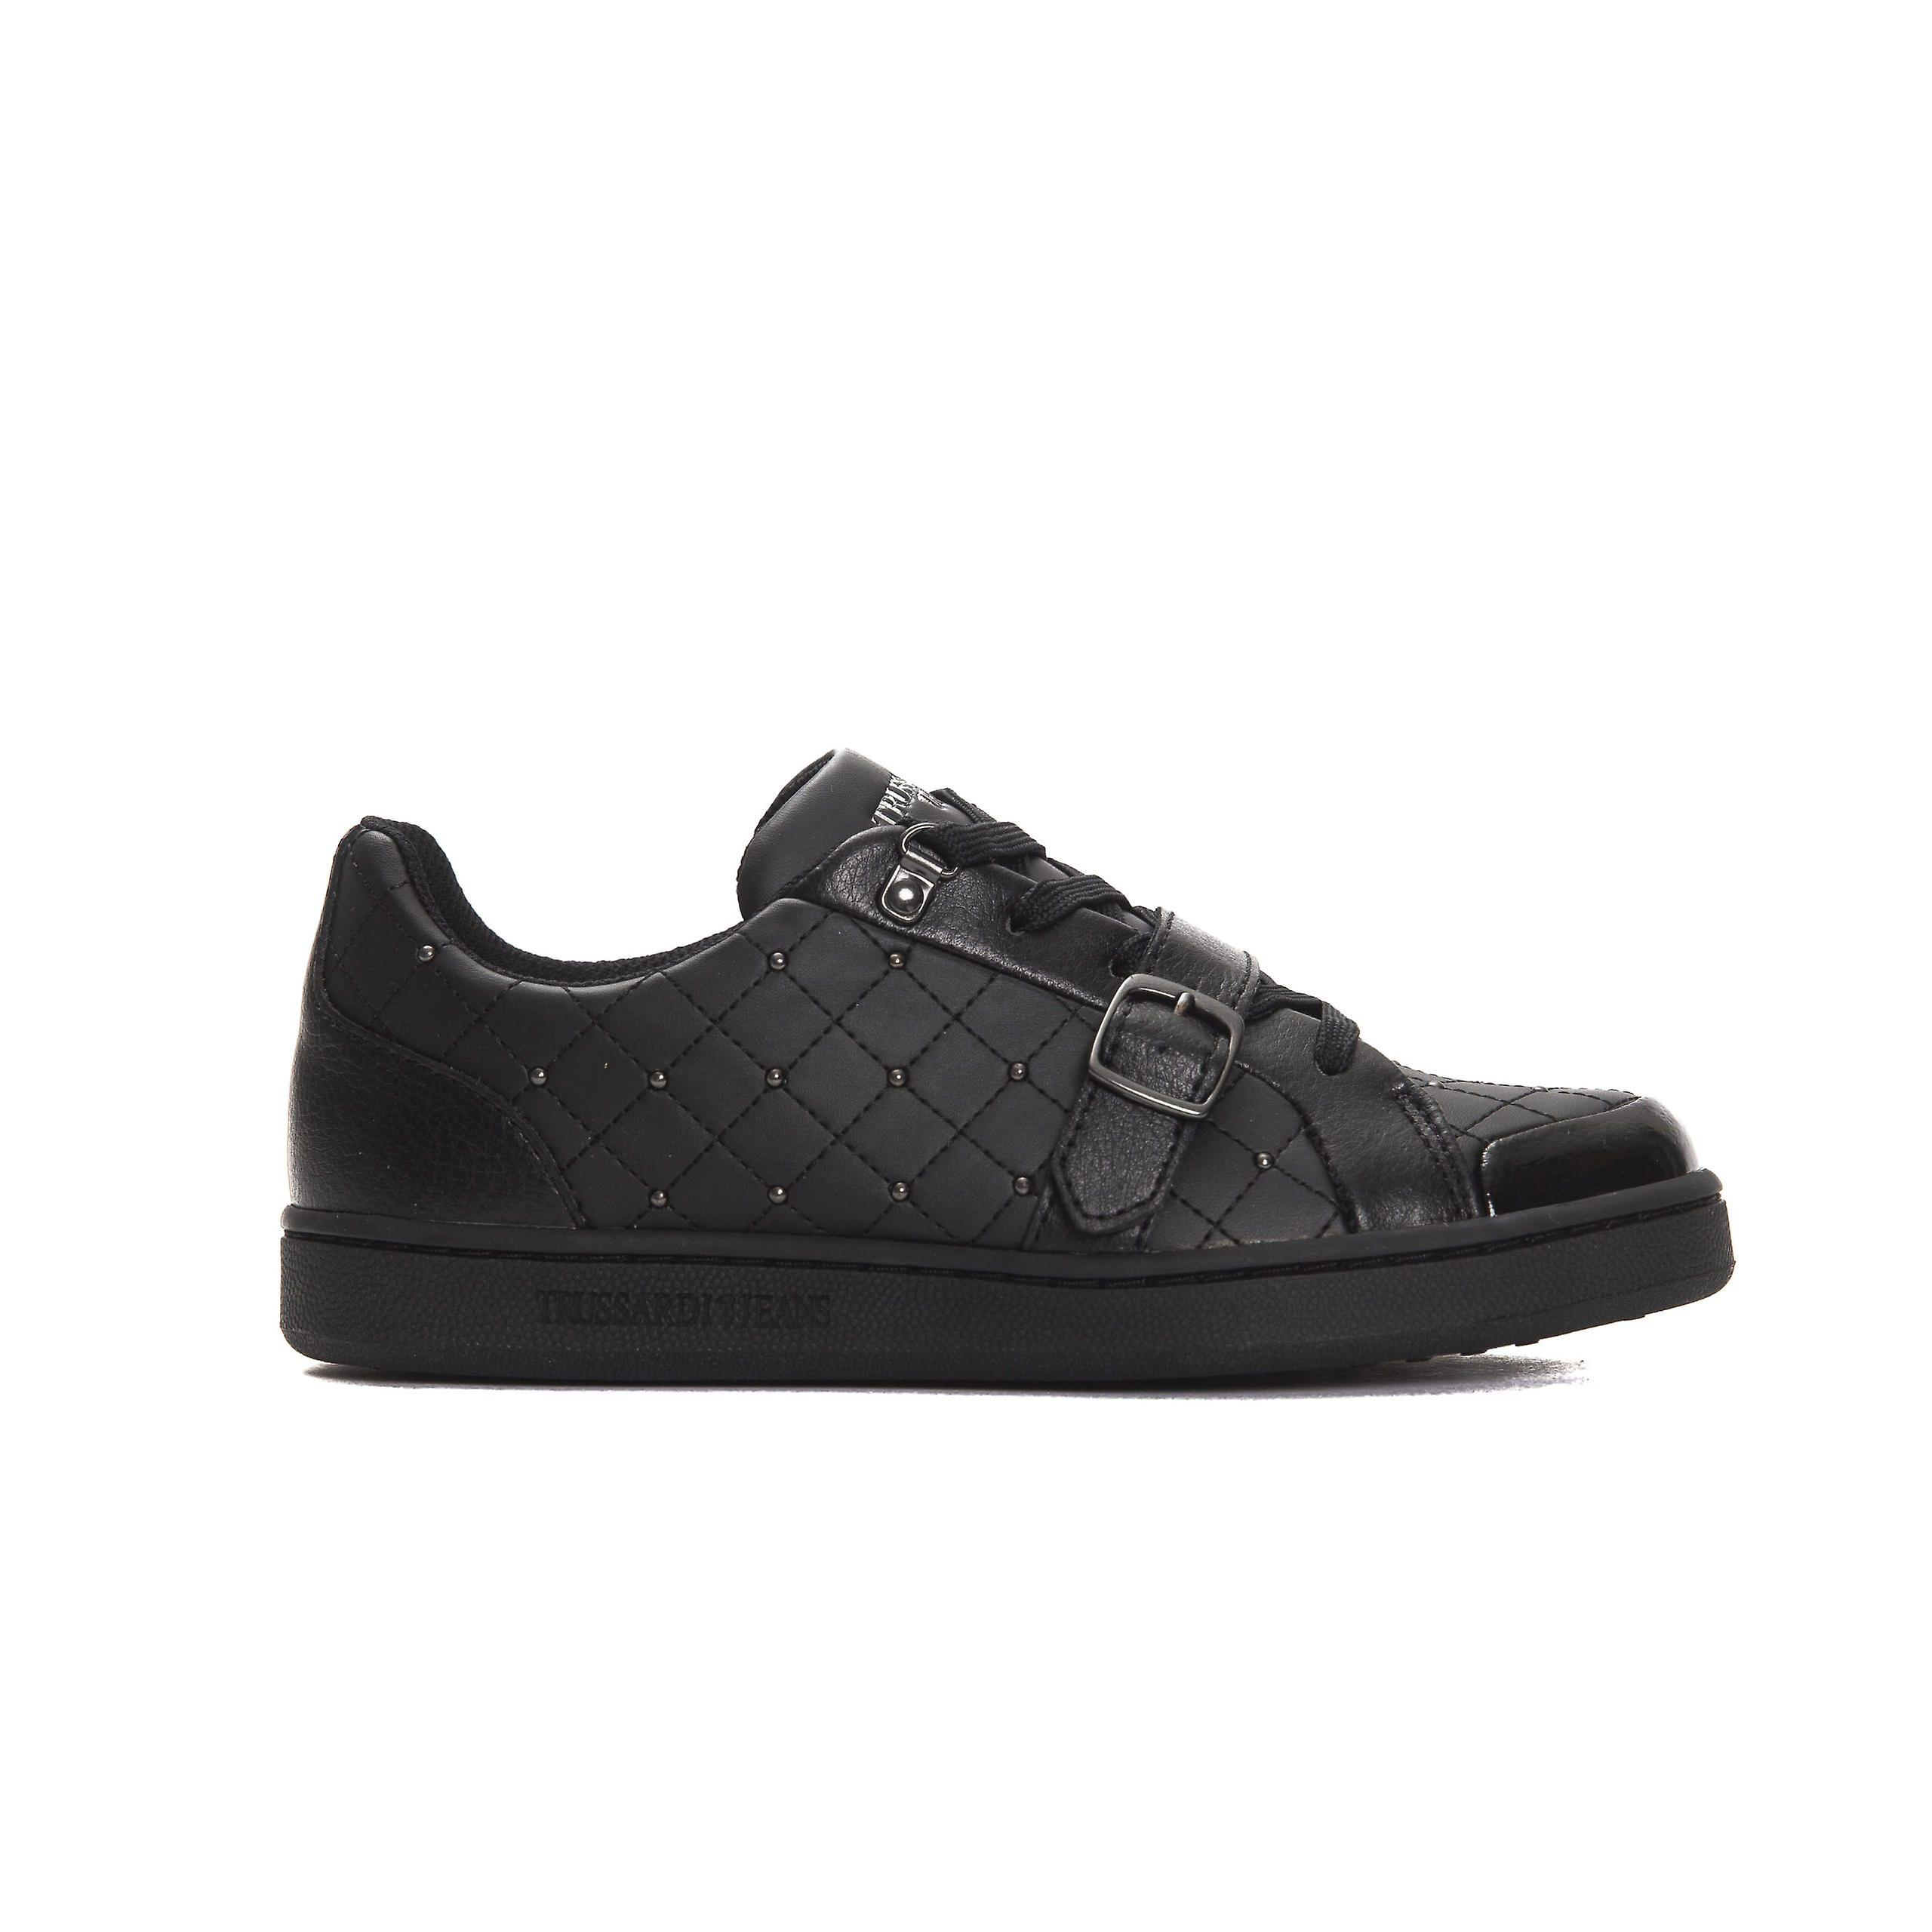 Trussardi Jeans Nero Black Calf Leather Diamond Quilt Sneakers 4tyjG